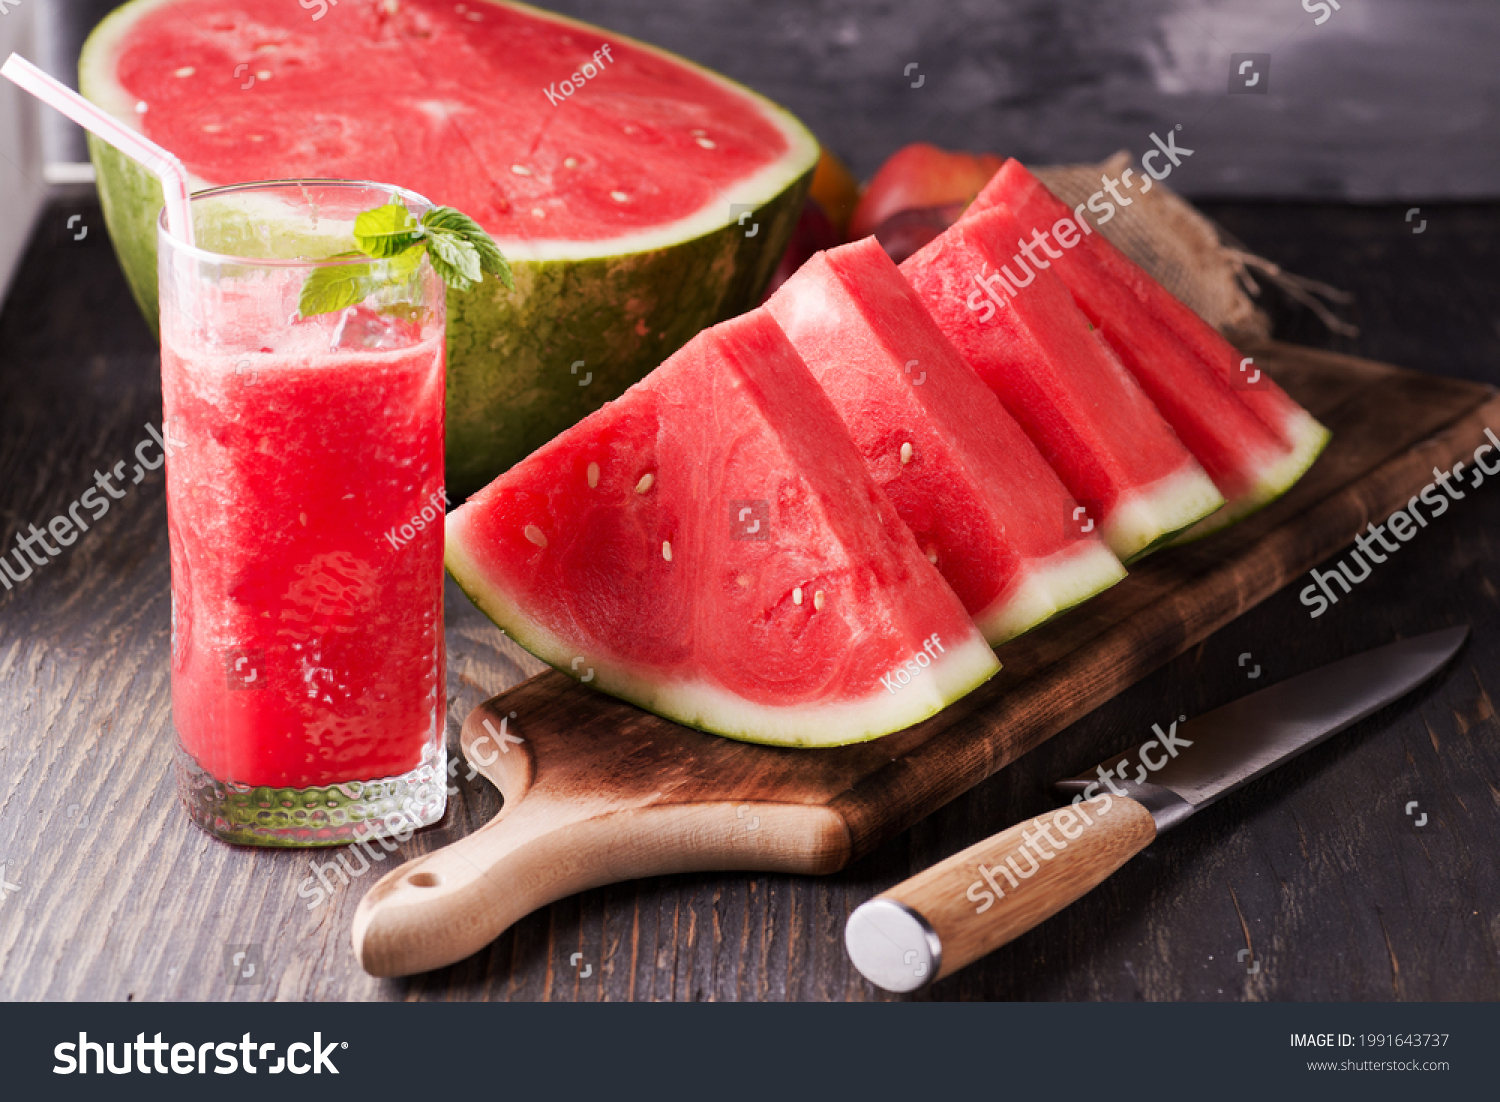 Fresh watermelon juice with ice in a glass. Slices of watermelon on the table.Fresh watermelon juice with ice in a glass. Slices of watermelon on the table. #1991643737